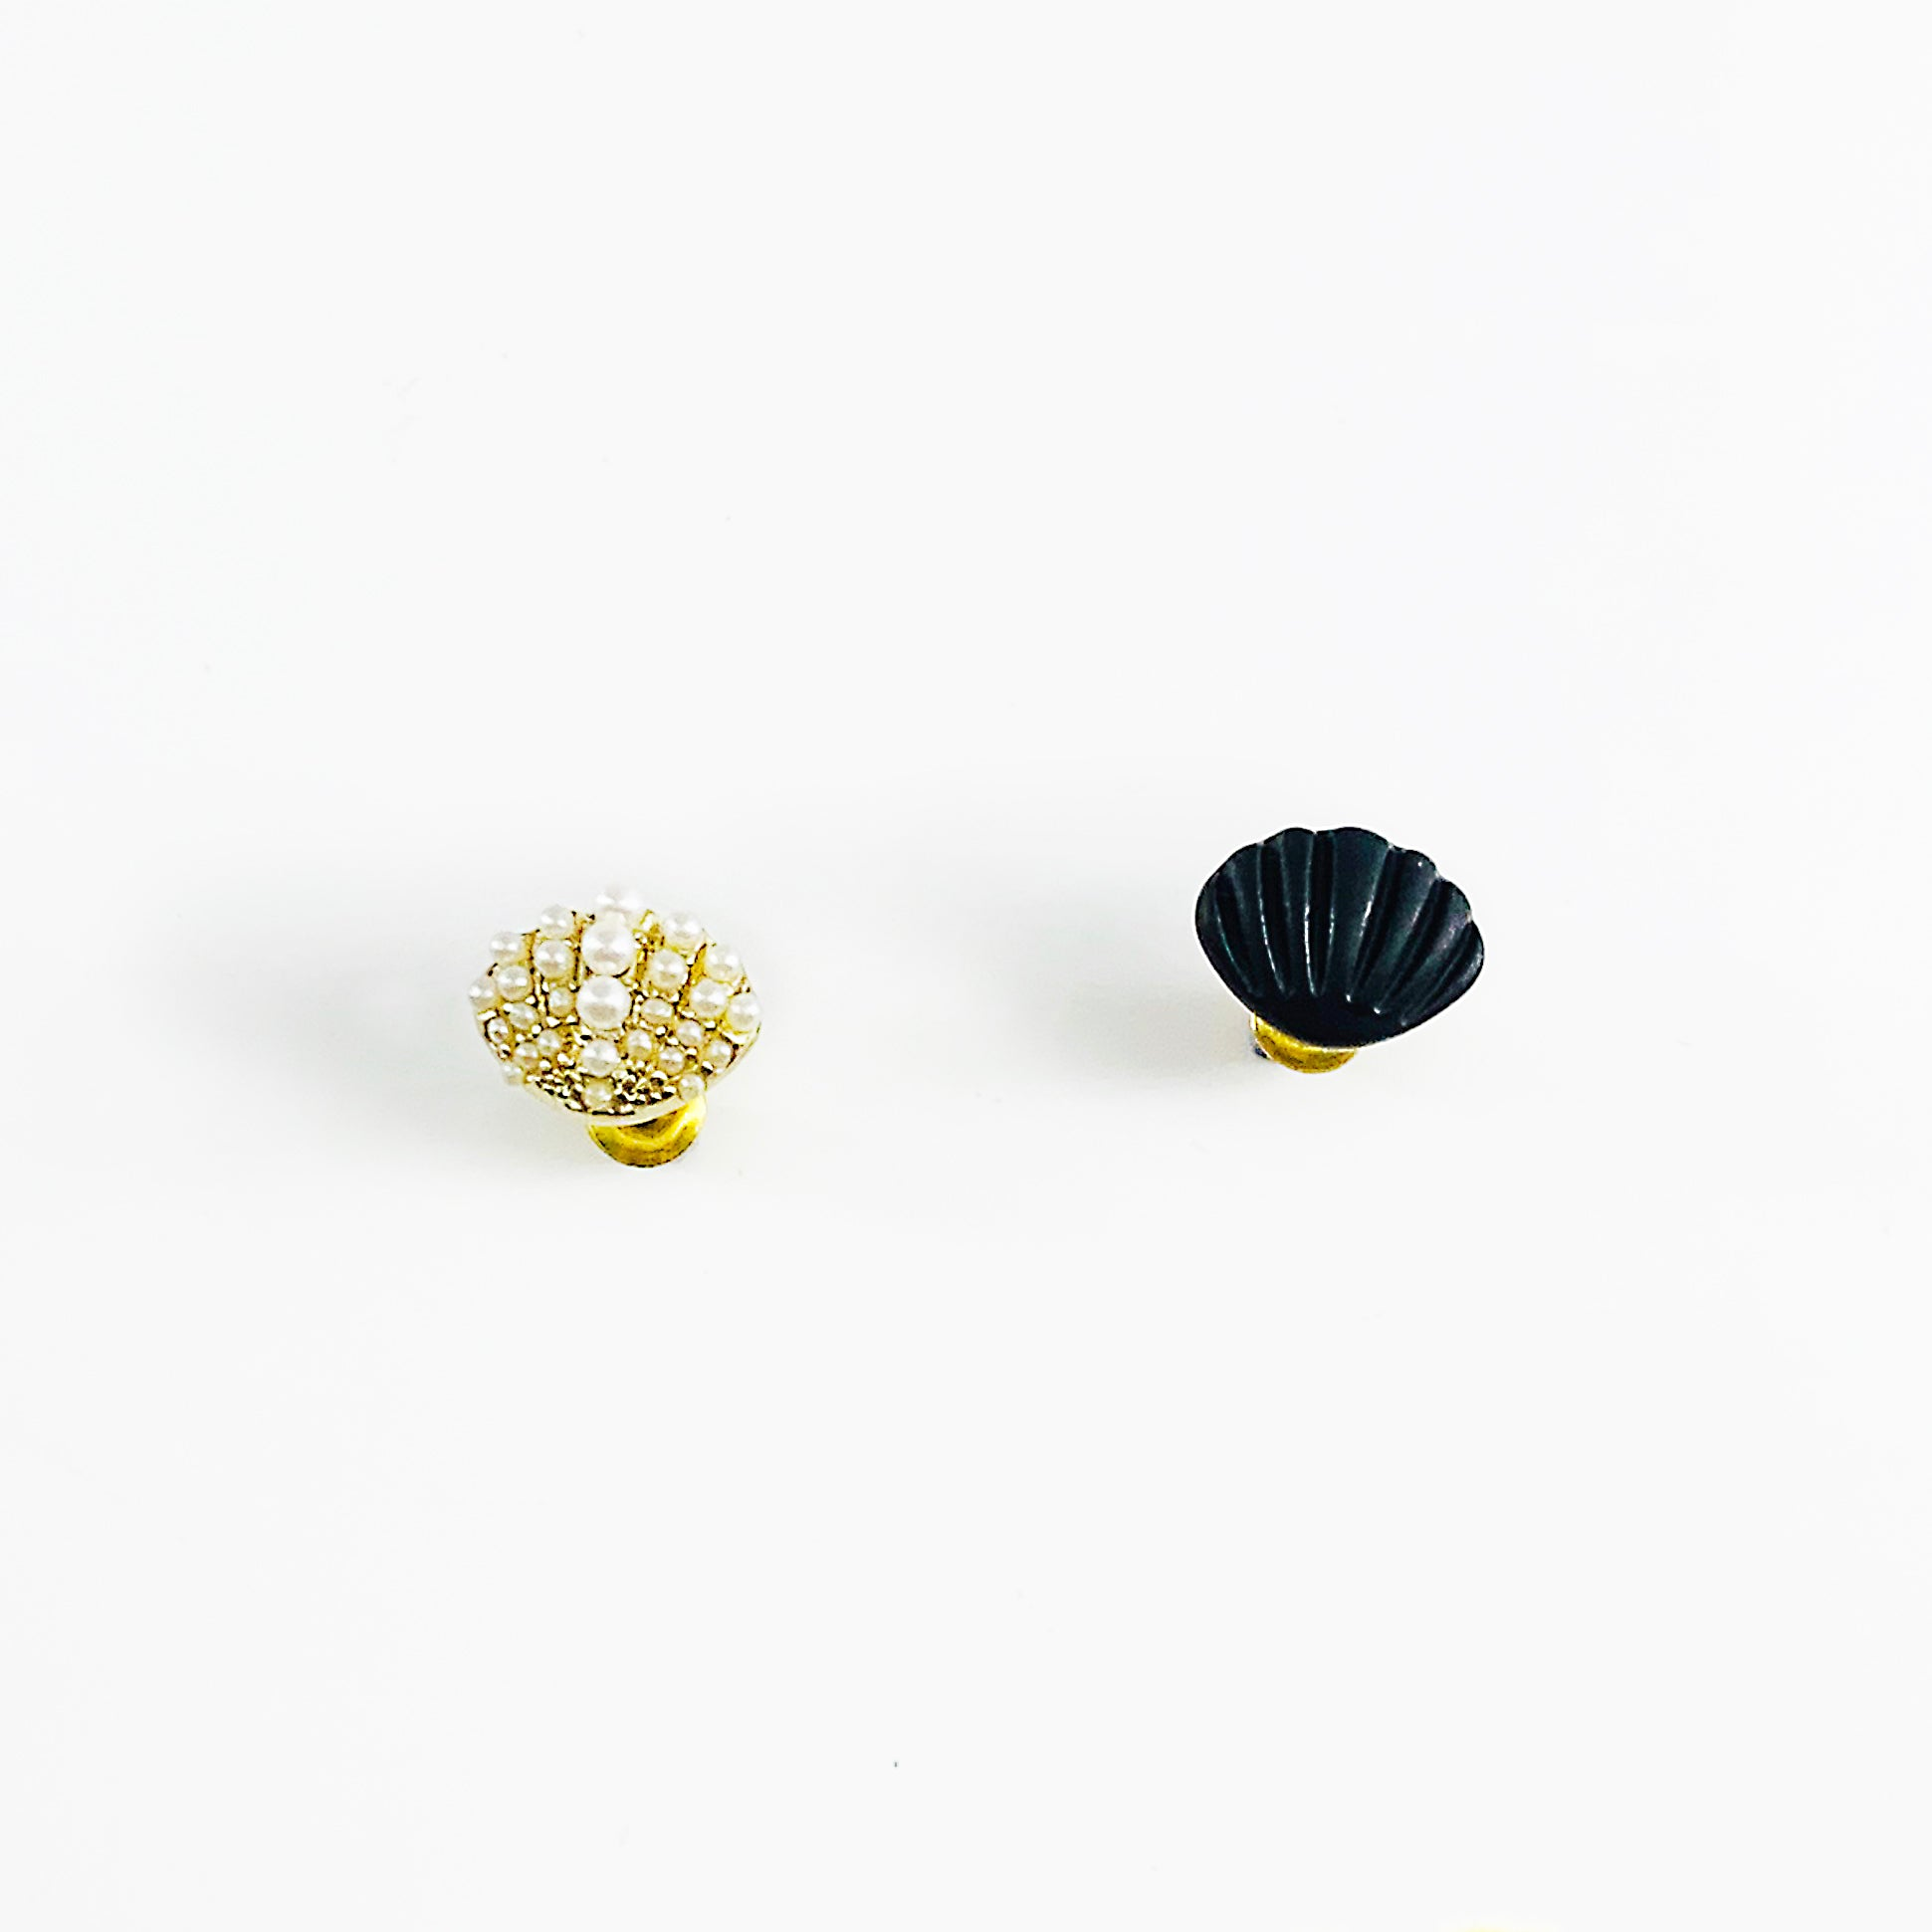 Seashell earrings in gold and pearl and matt black